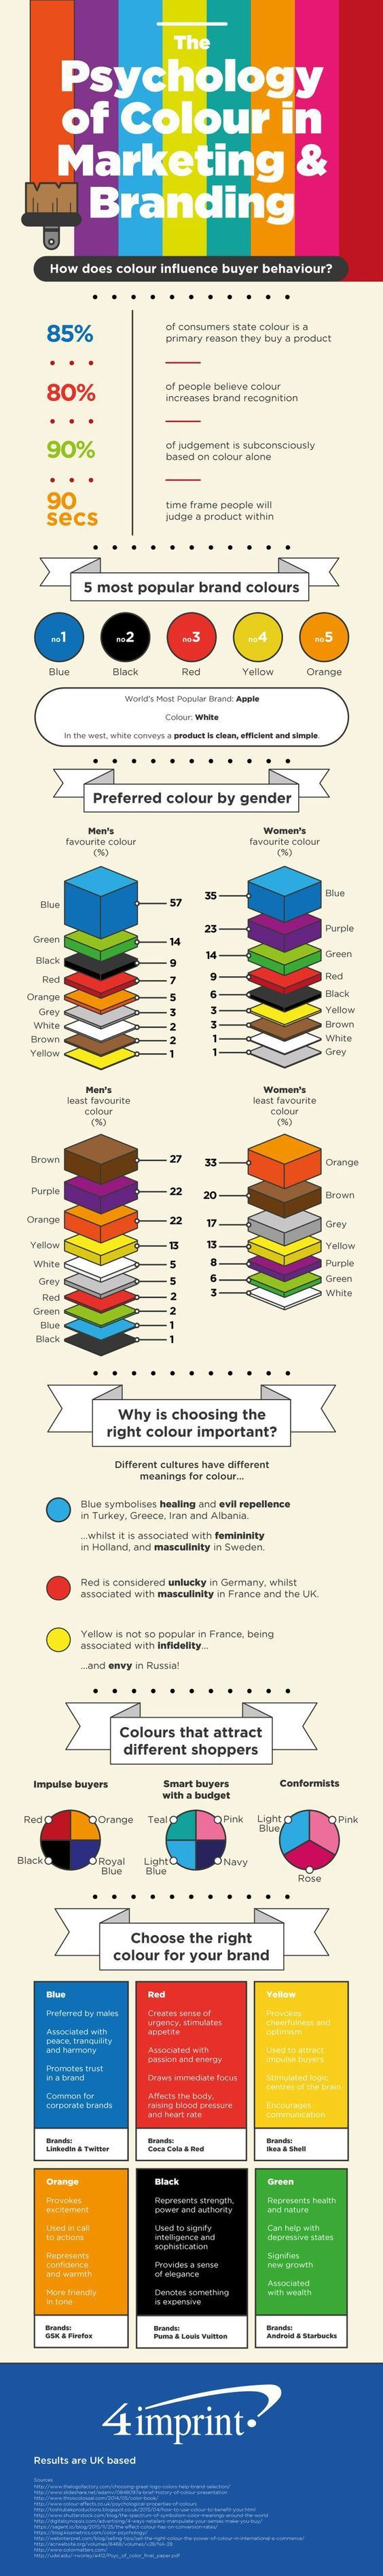 parrot sky controller for bebop quadcopter drone blue pinterest psychologie infographie. Black Bedroom Furniture Sets. Home Design Ideas